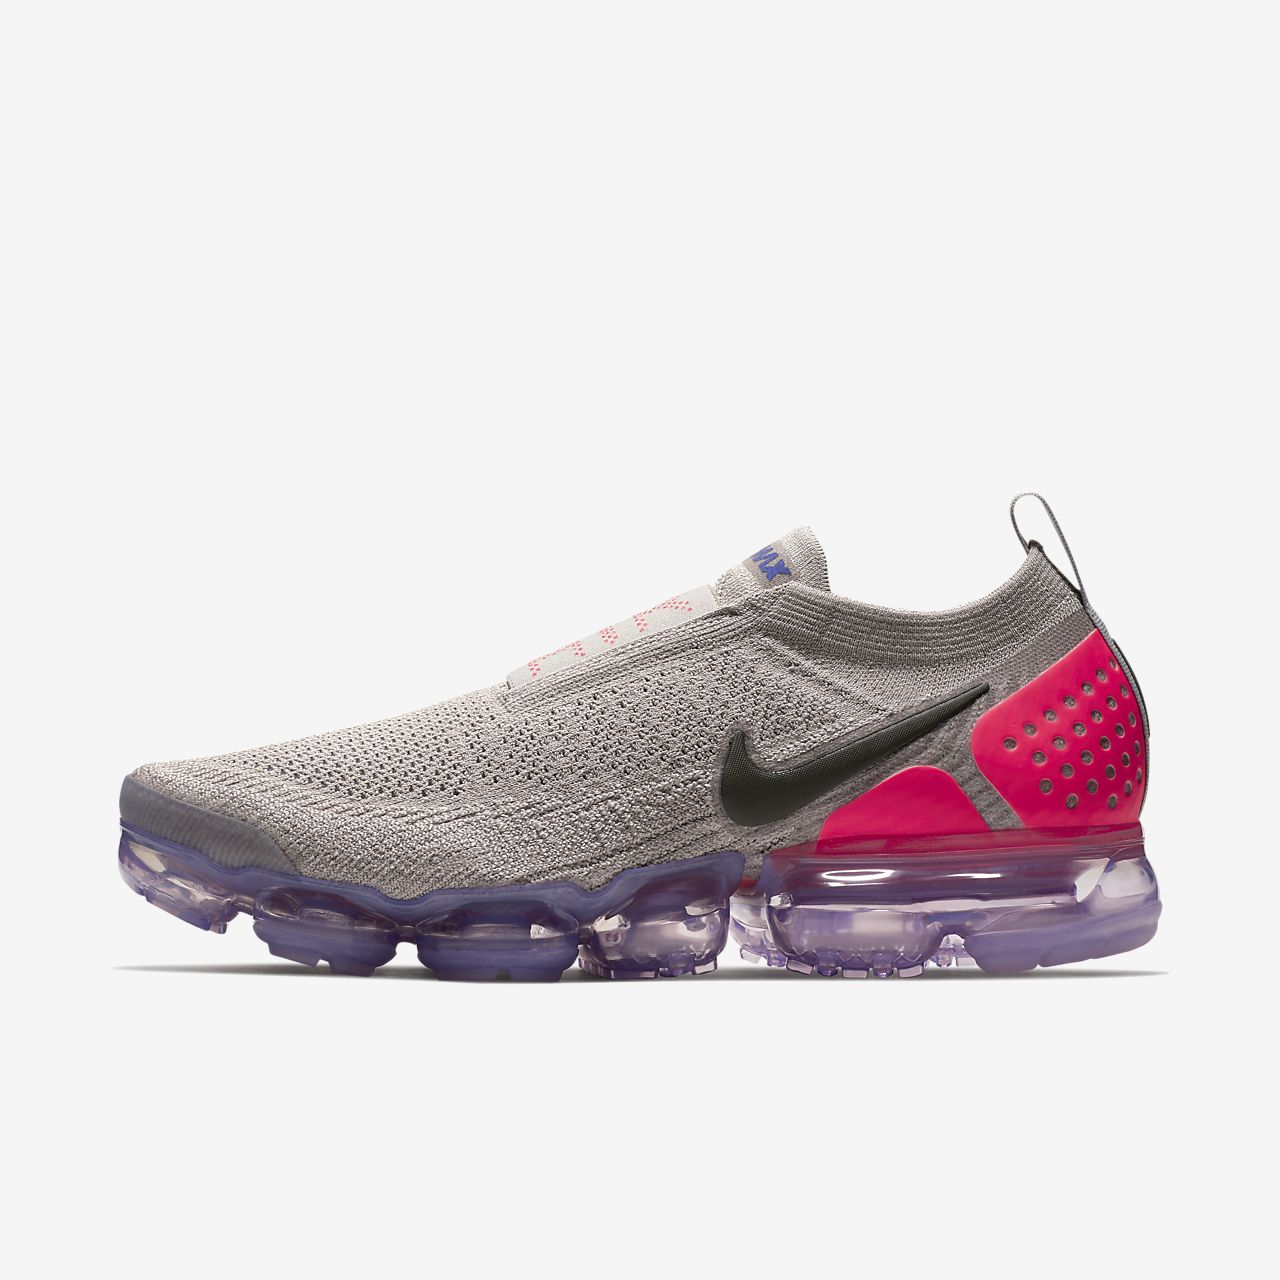 reputable site 7bdf6 ea930 Nike Air VaporMax Flyknit Moc 2